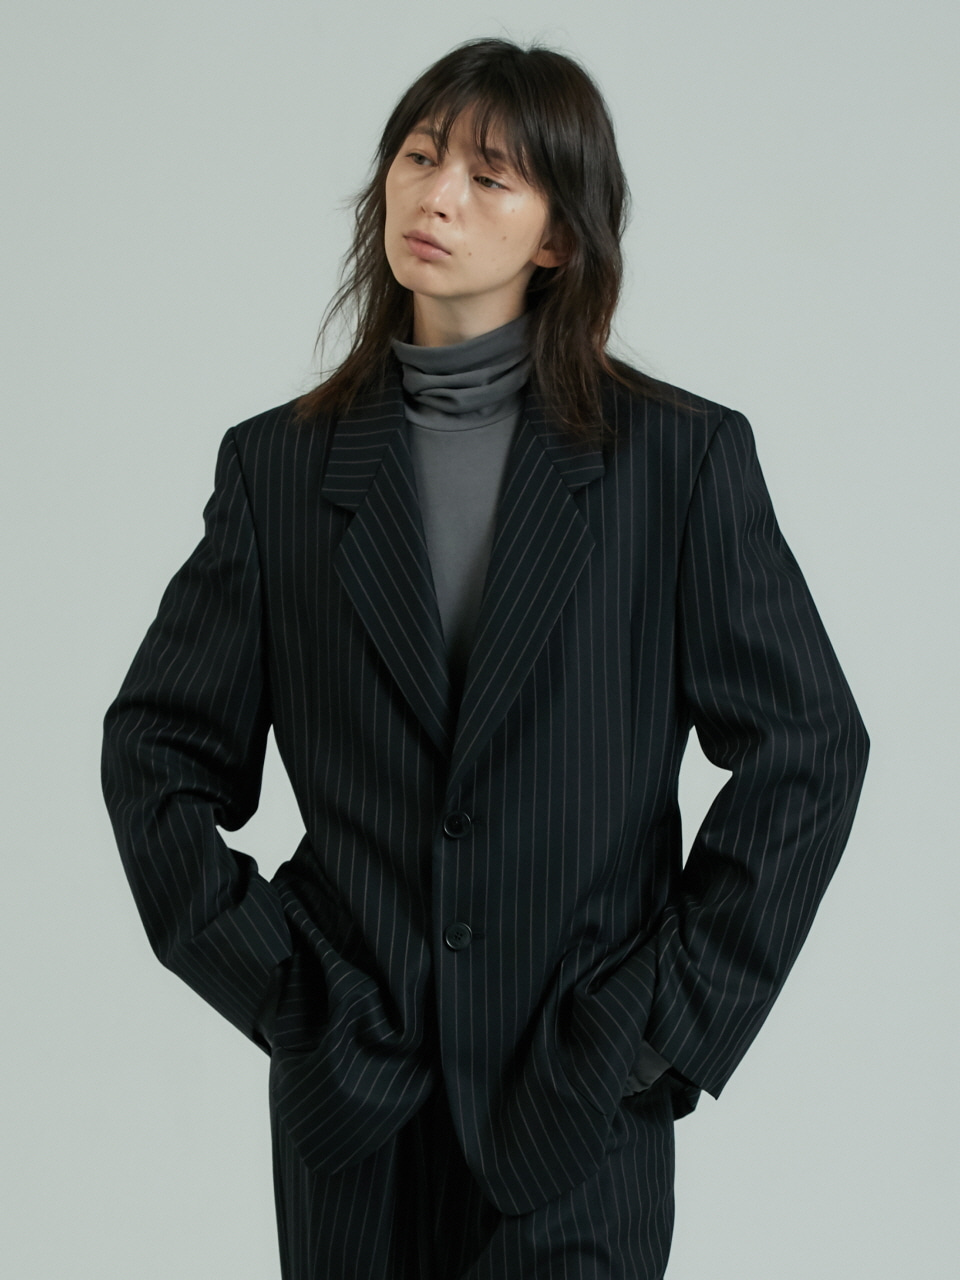 RETRO MEN'S BLAZER - NAVY STRIPE